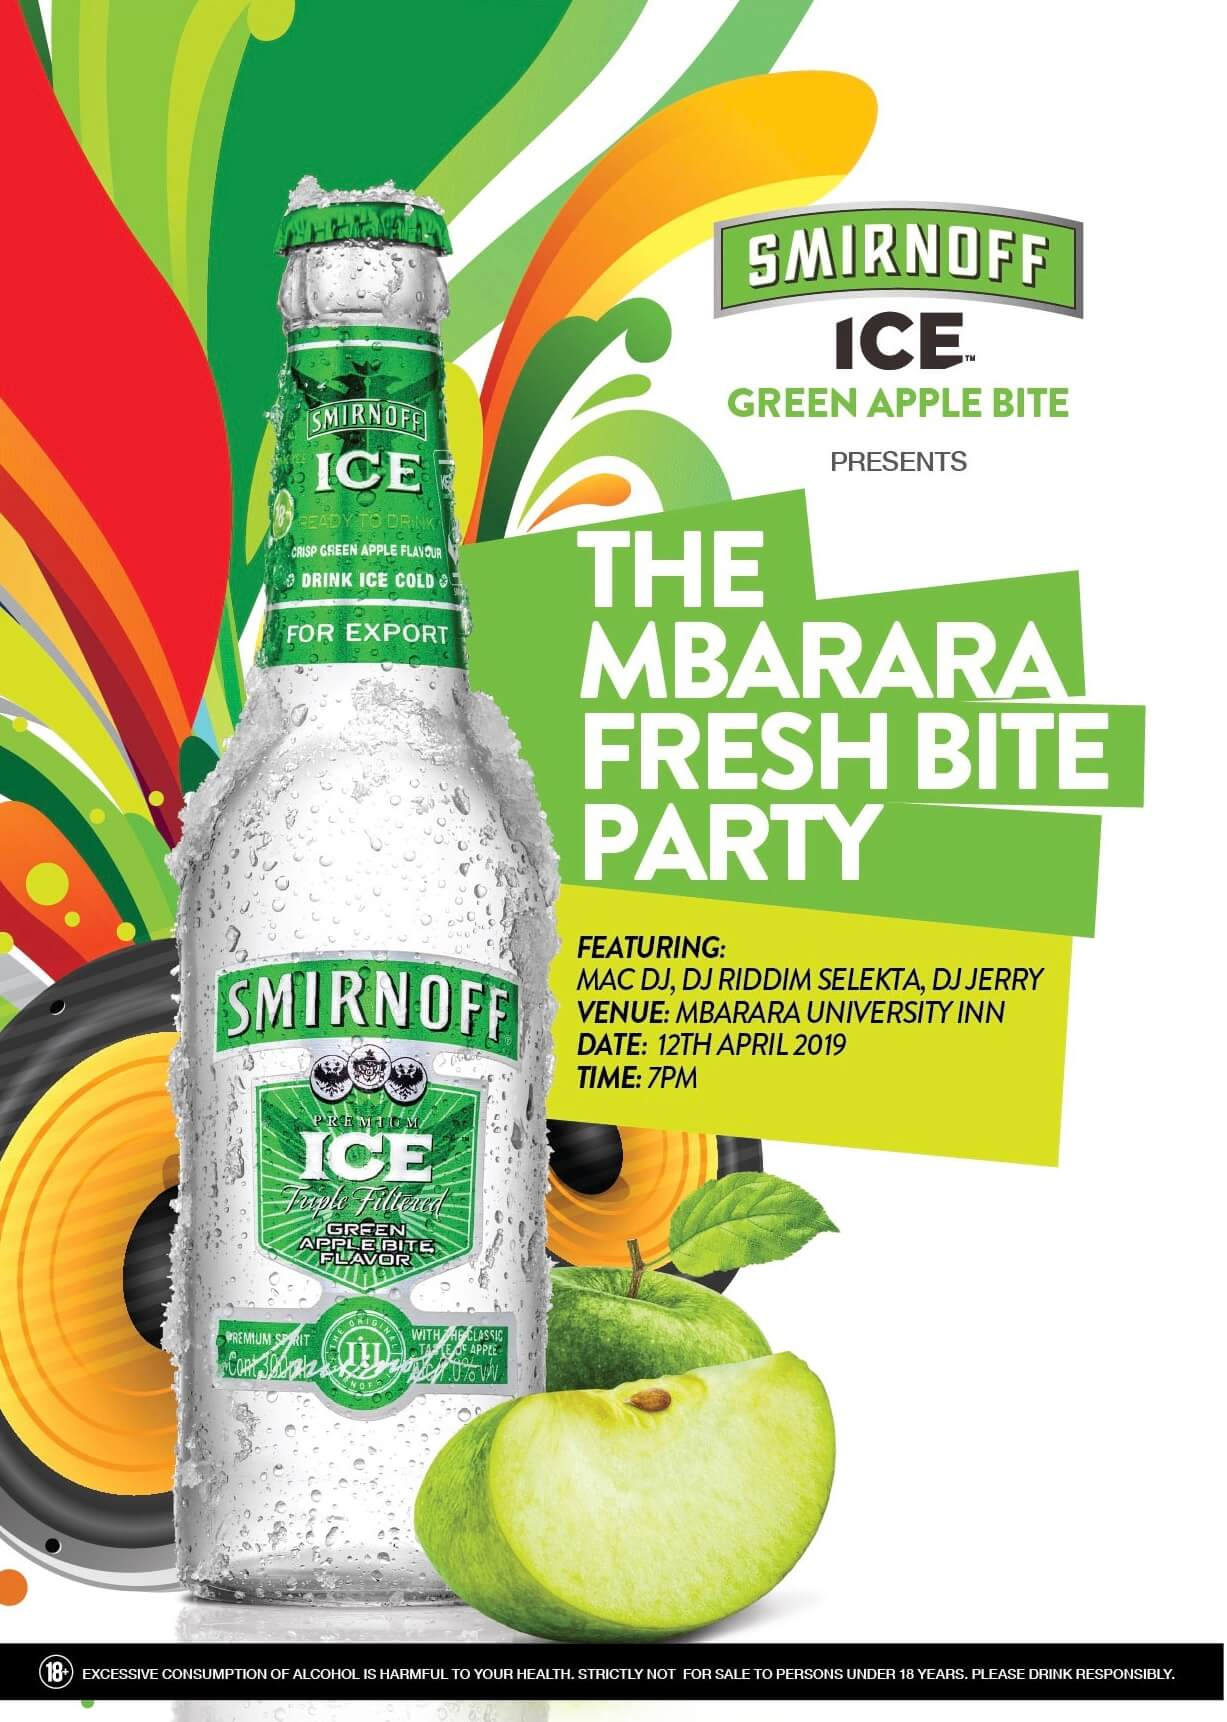 Mbarara Fresh Bite Party